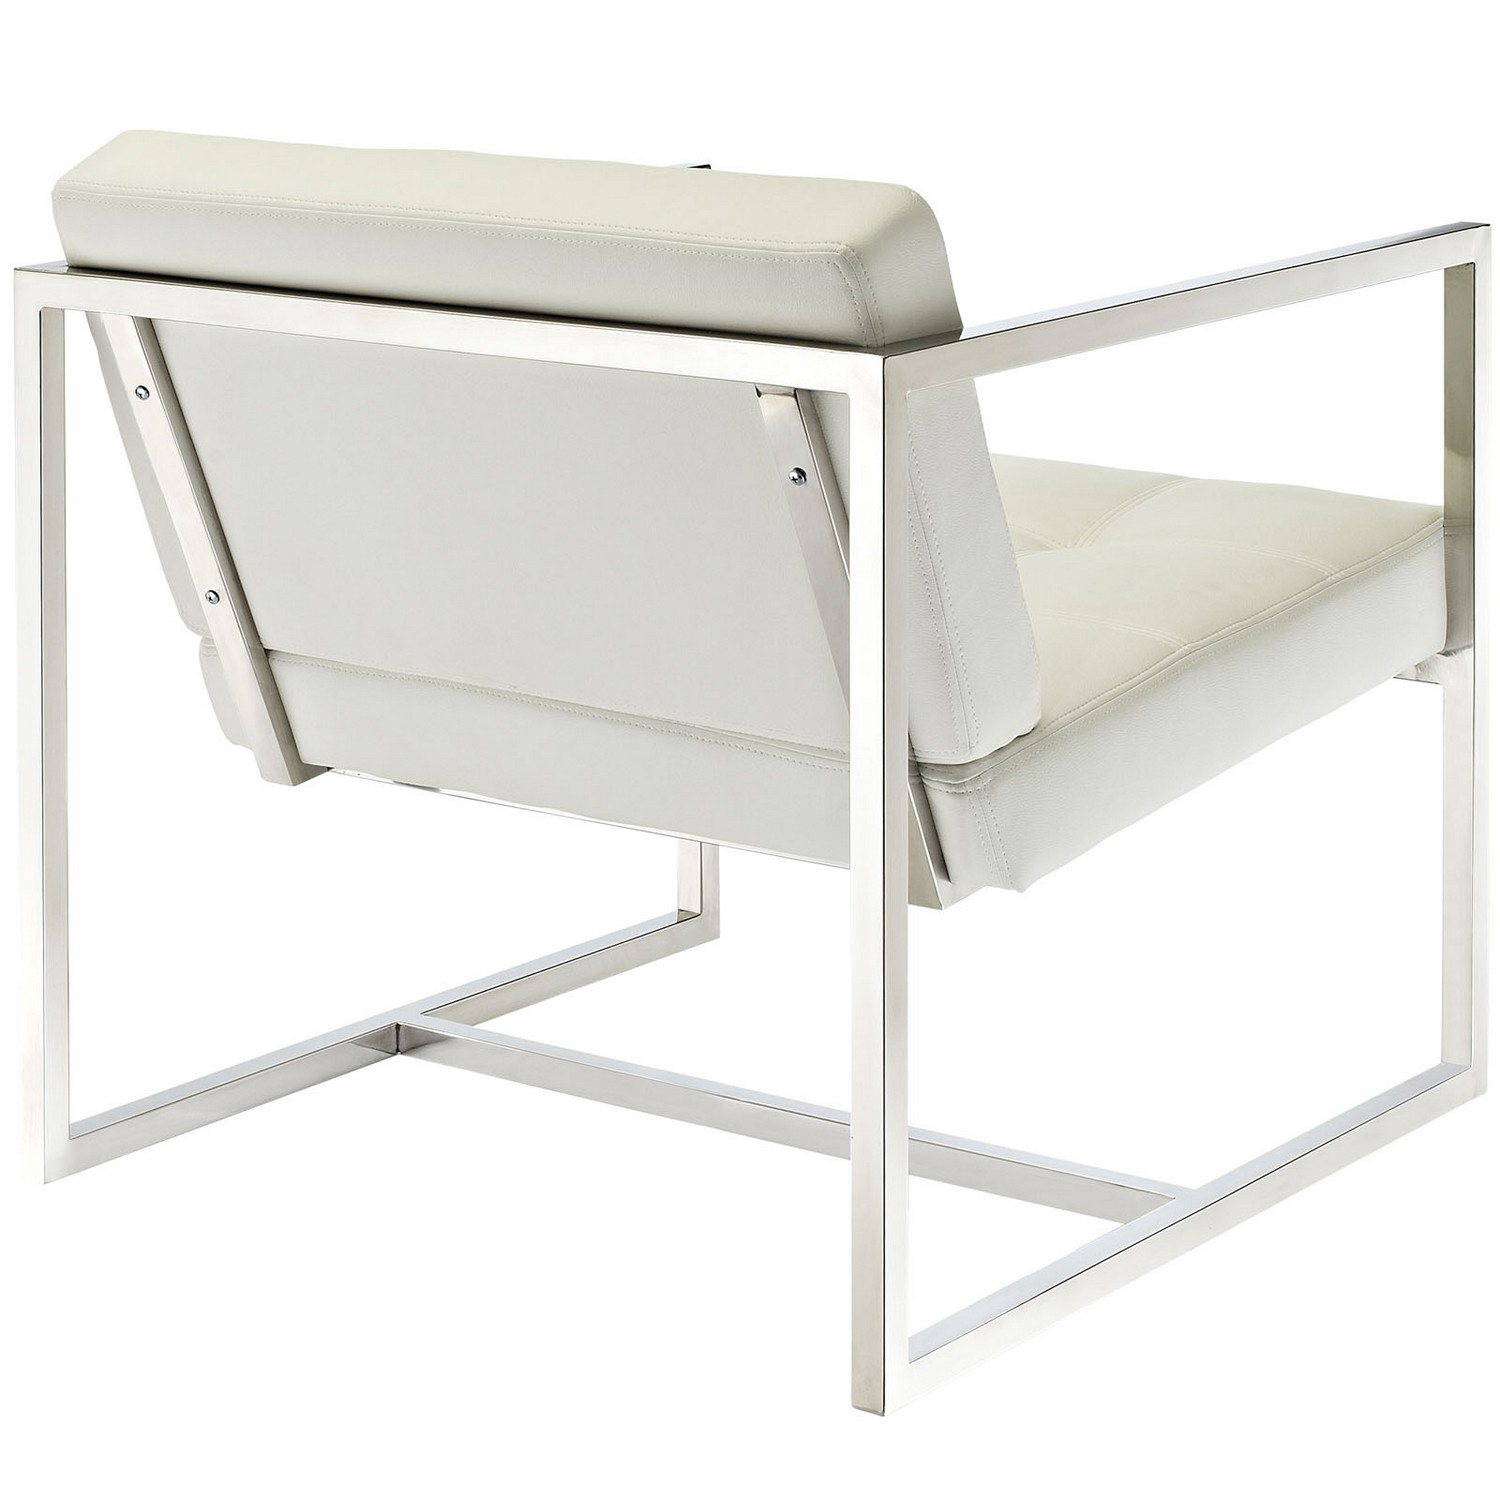 Modway Hover Lounge Chair - White